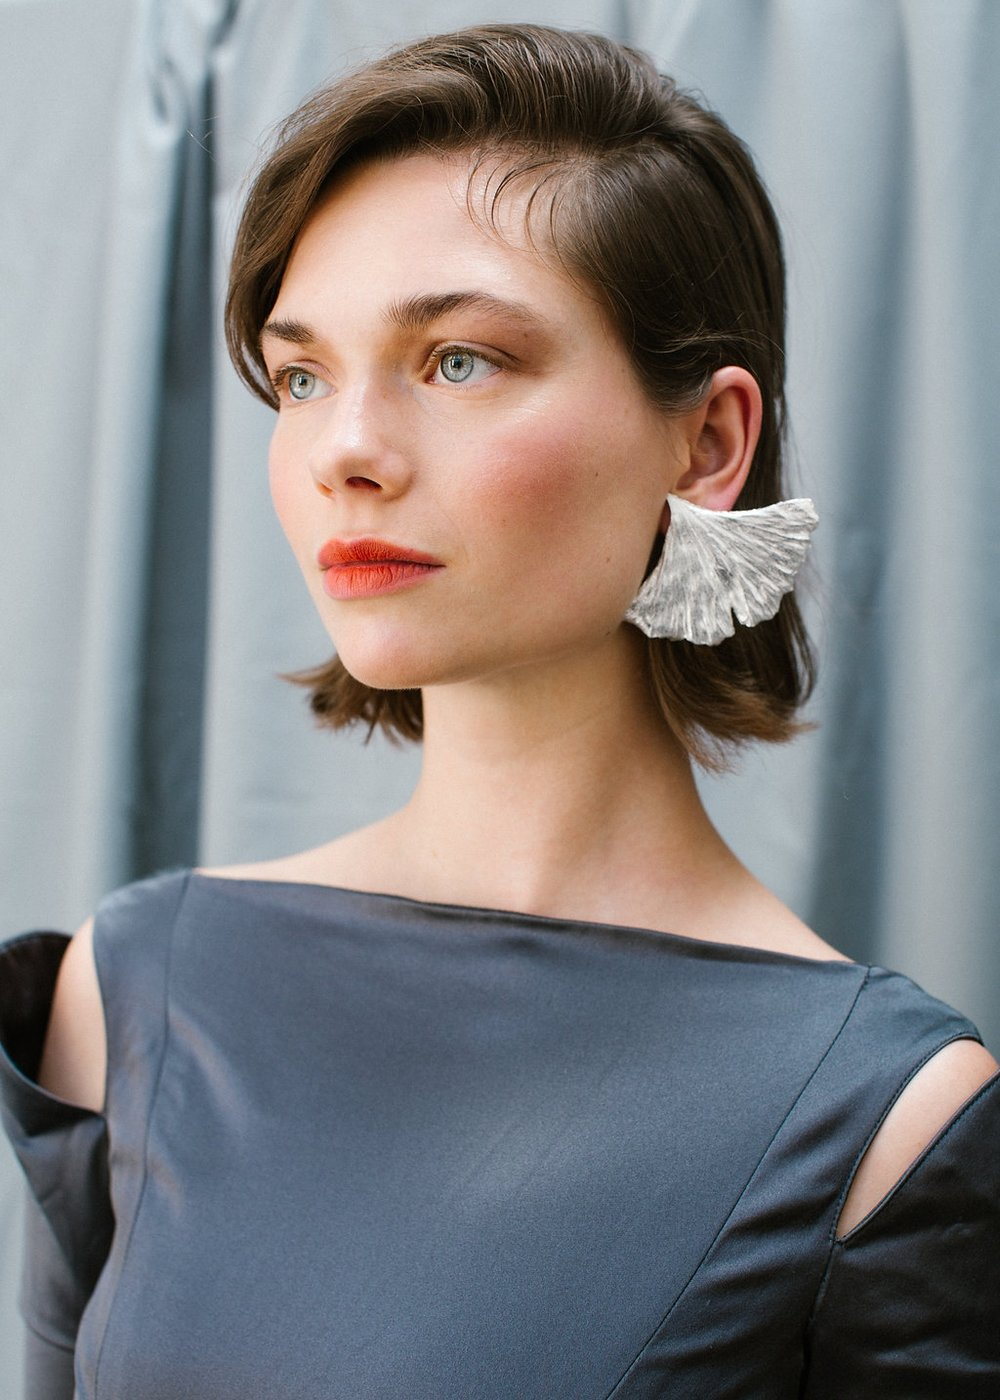 The Eljin earring handmade Sterling Silver earrings by Naturae Design.